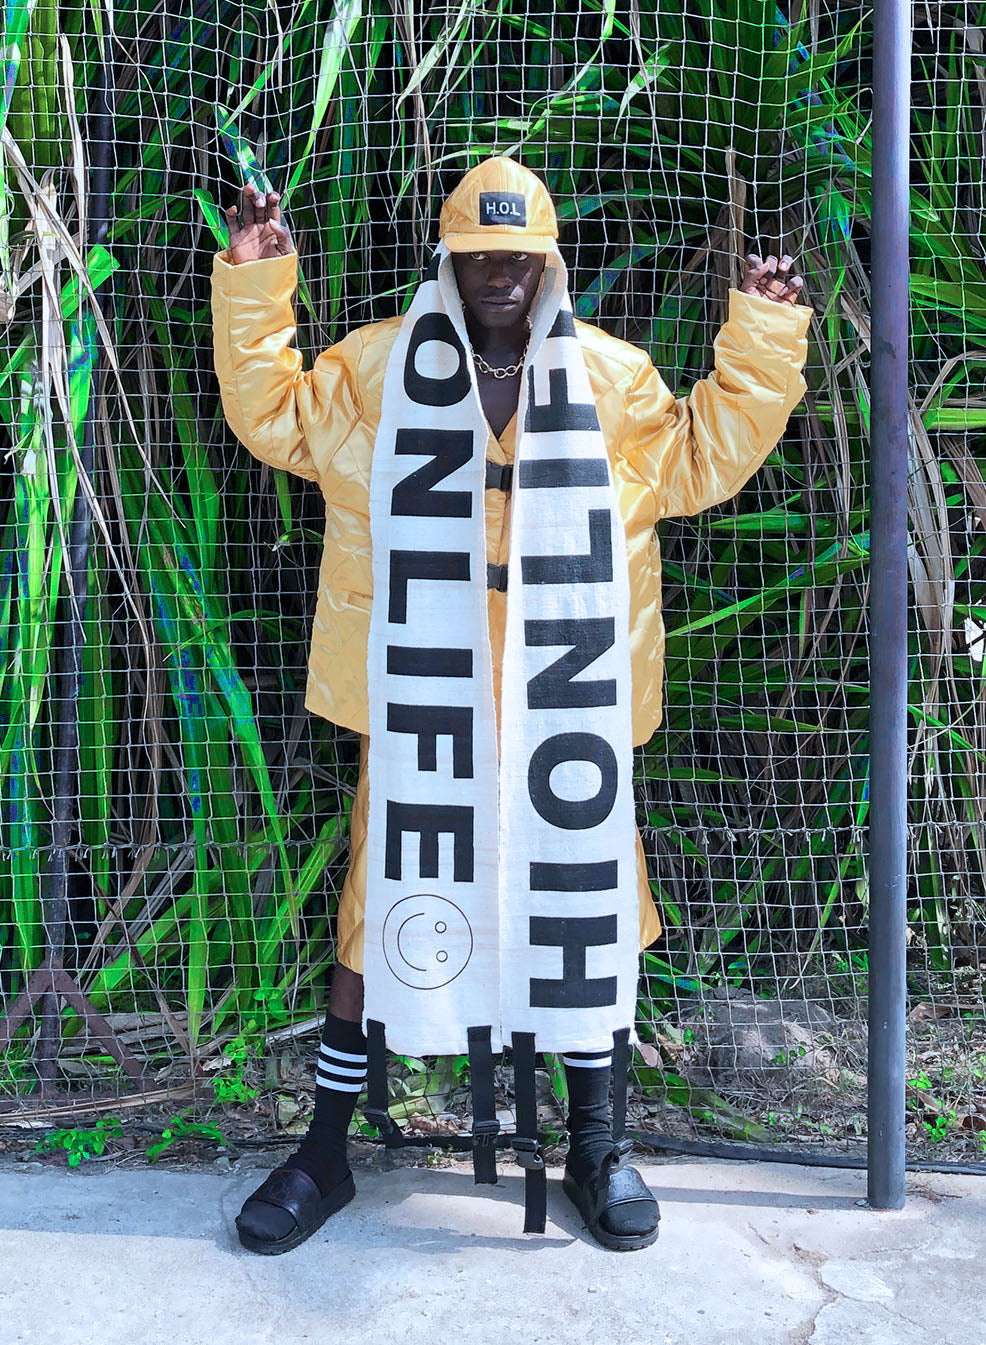 H.O.L 2.0.8_13 GOLDEN WORKER JACKET